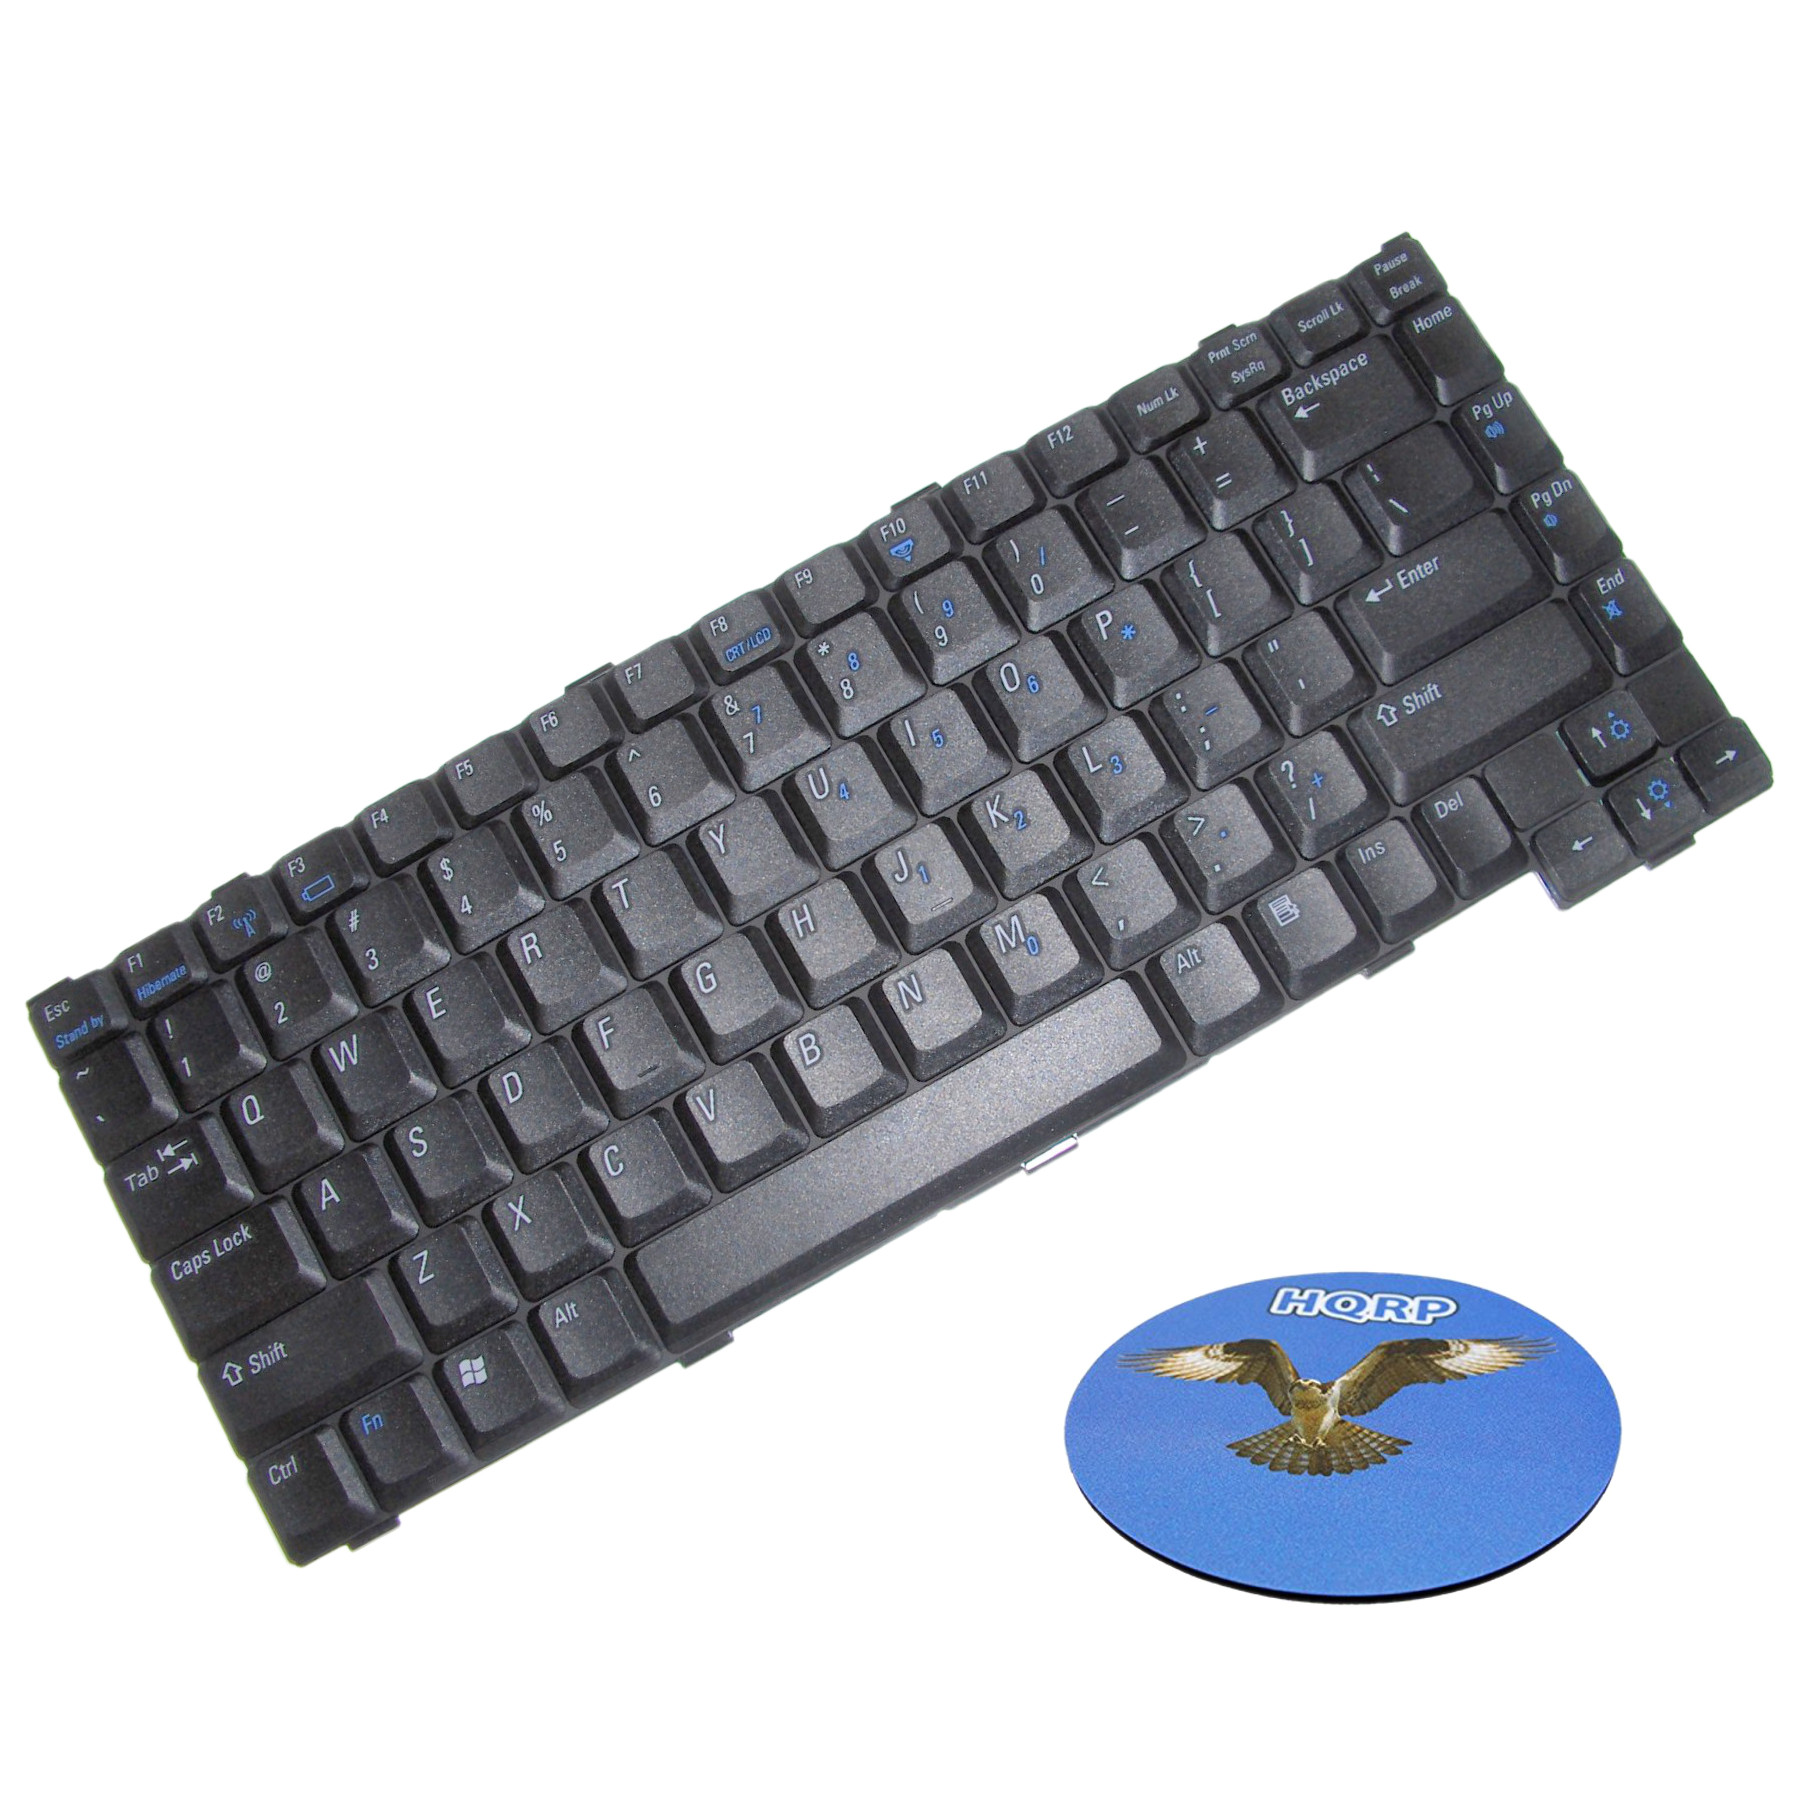 HQRP Keyboard for Dell Inspiron 1200 / 2200 ; Latitude 110L Laptop / Notebook Replacement plus HQRP Coaster